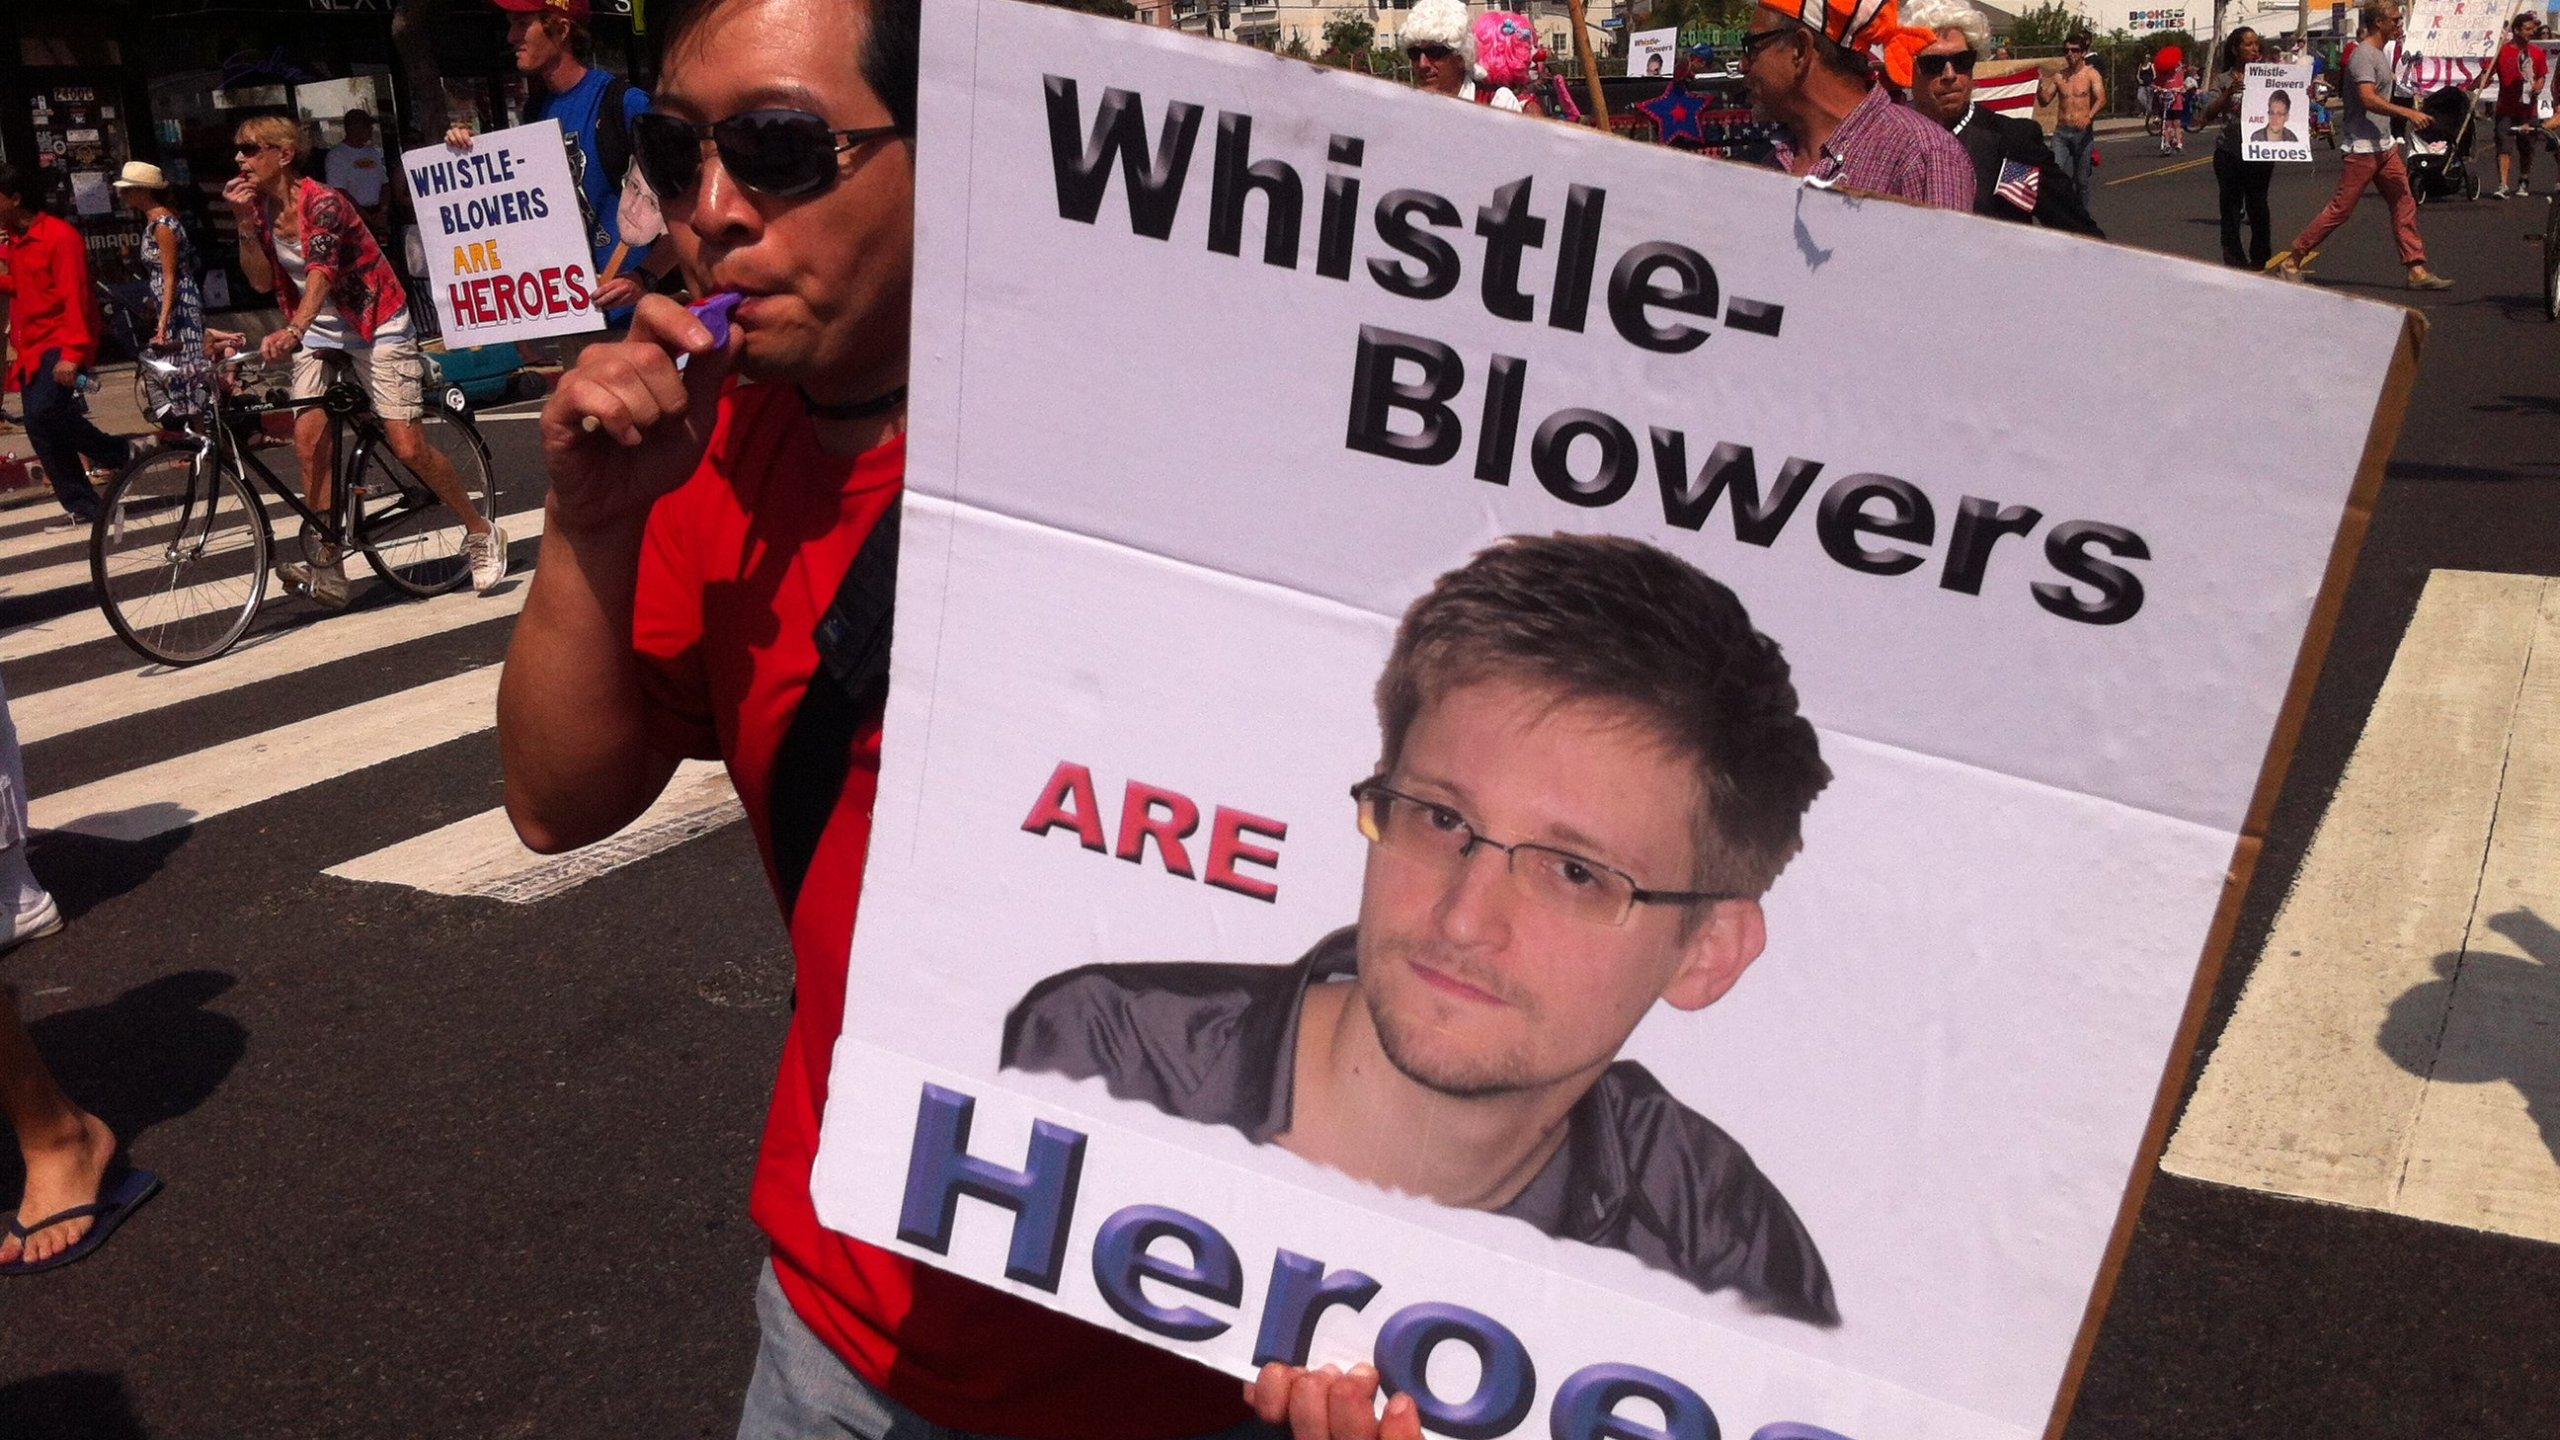 Supporters of Edward Snowden rally recently. (Credit: CNN)